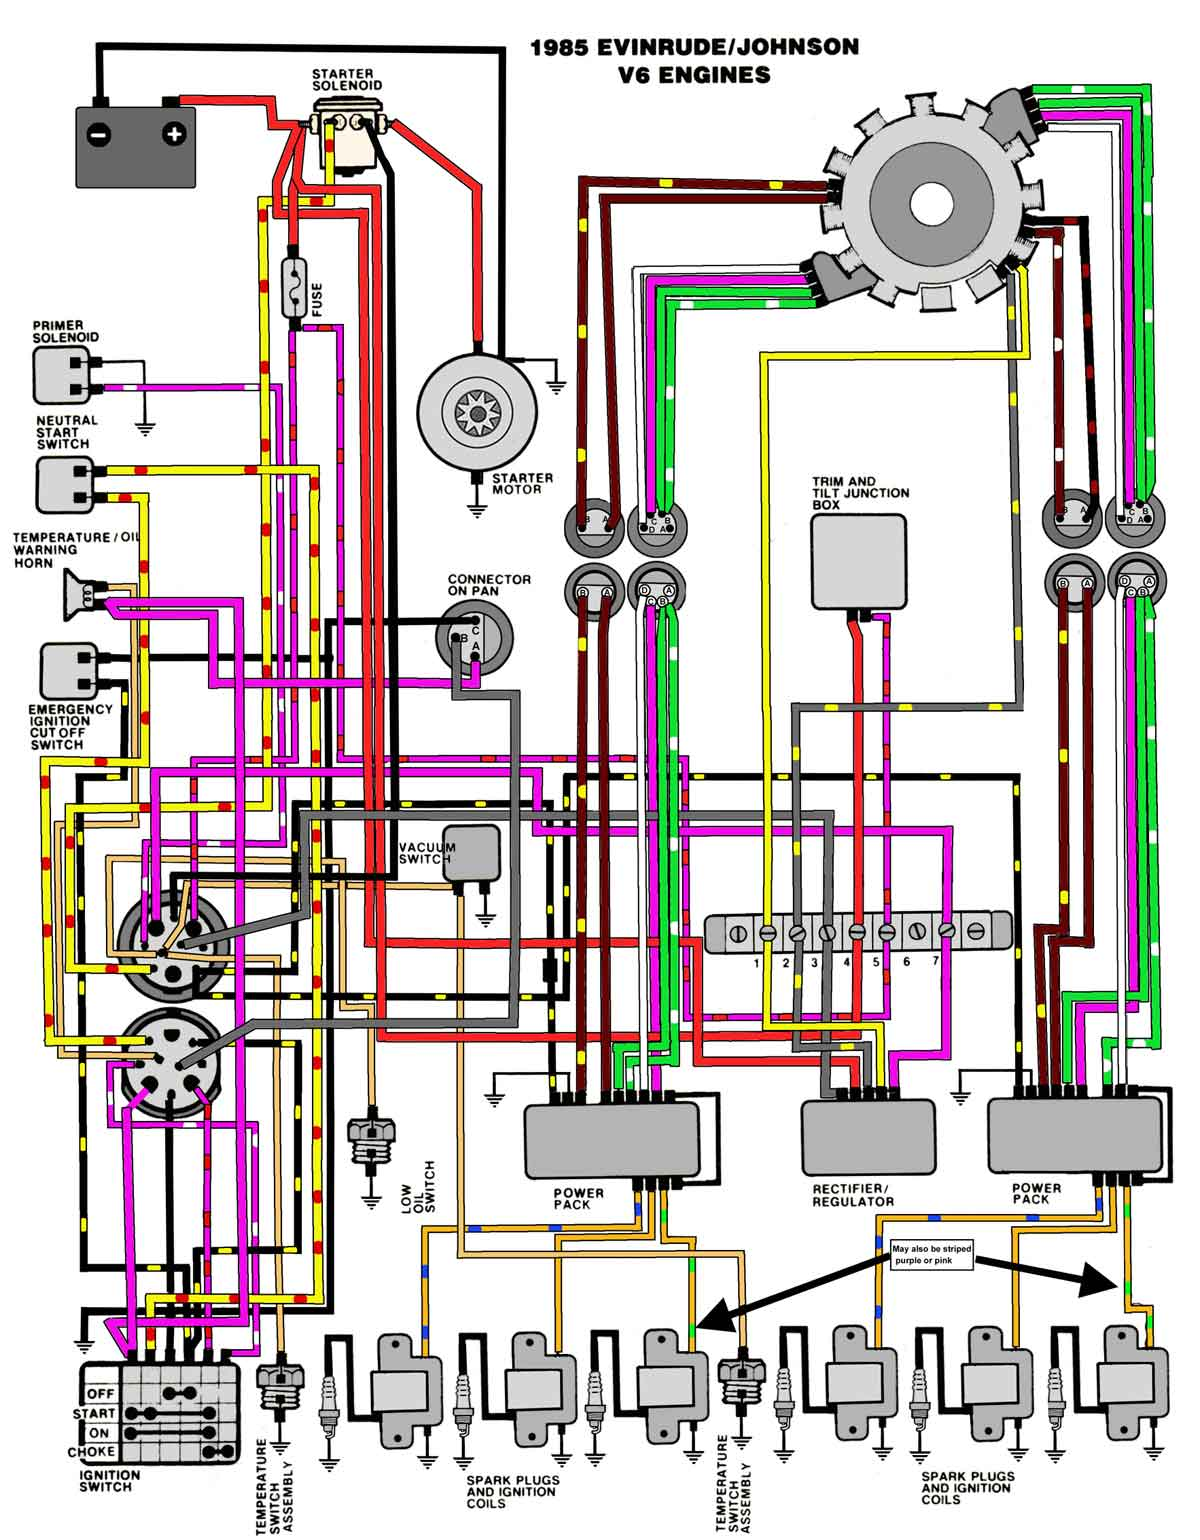 mercury 150 wiring diagram re 9128  evinrude outboard motor wiring diagram schematic wiring mercury 150 xr6 wiring diagram evinrude outboard motor wiring diagram